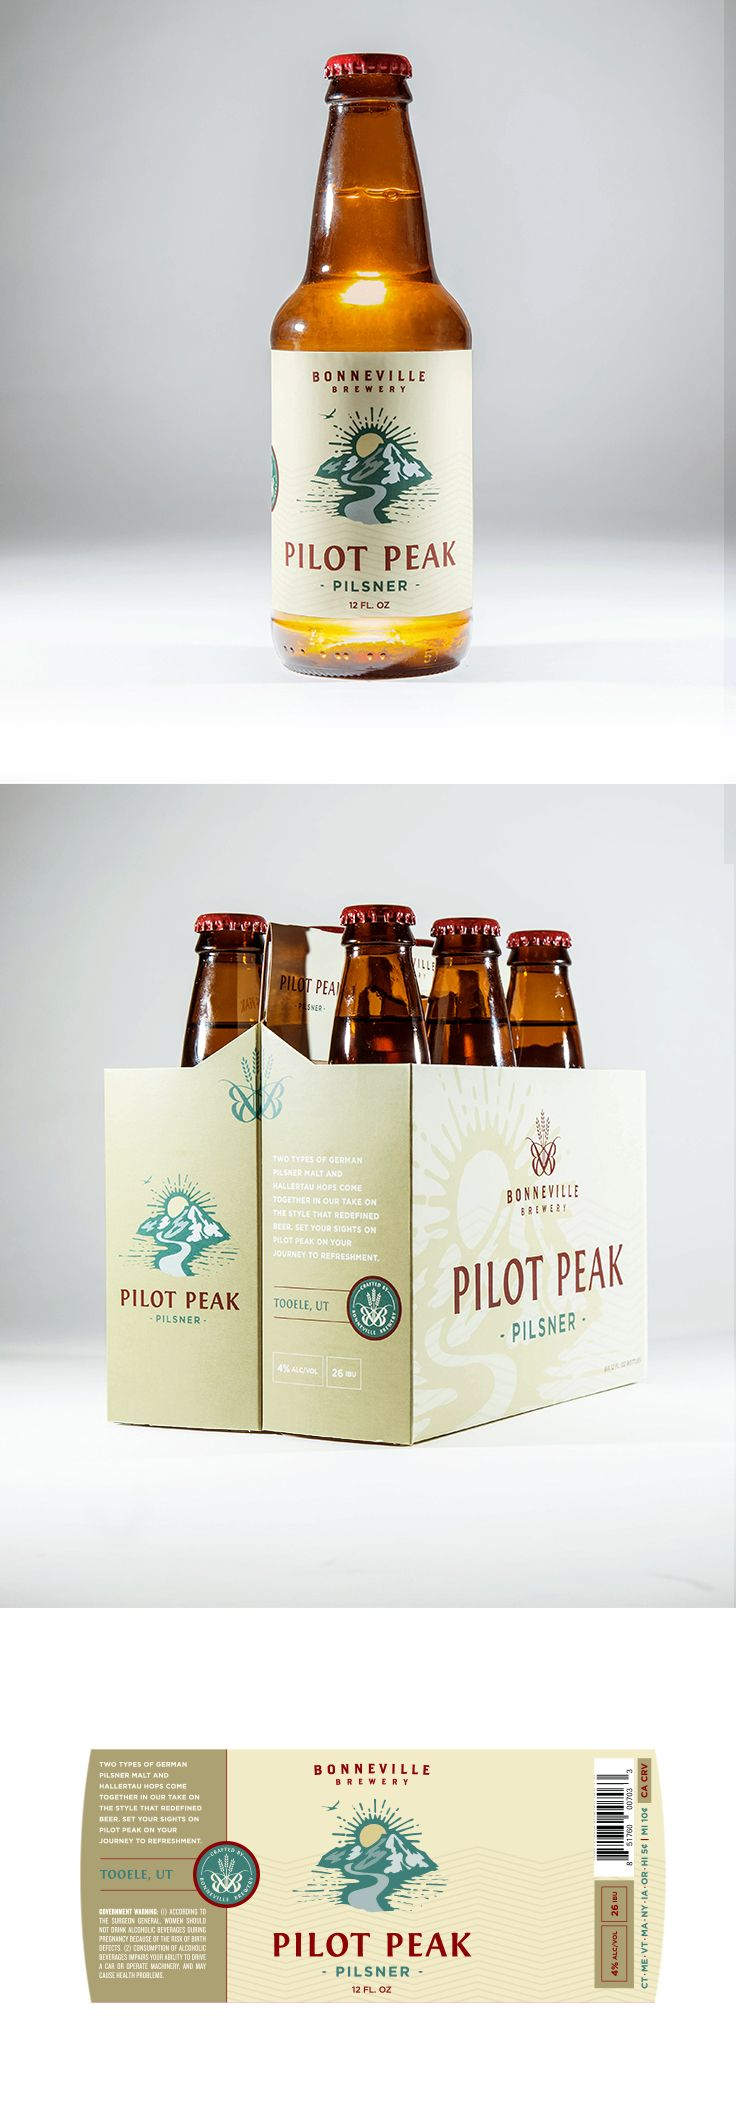 Pilot Peak Label and Box design by Epic Marketing for Bonneville Brewery. #packagingdesing #graphicdesing #labeldesign #beer #beerlabel